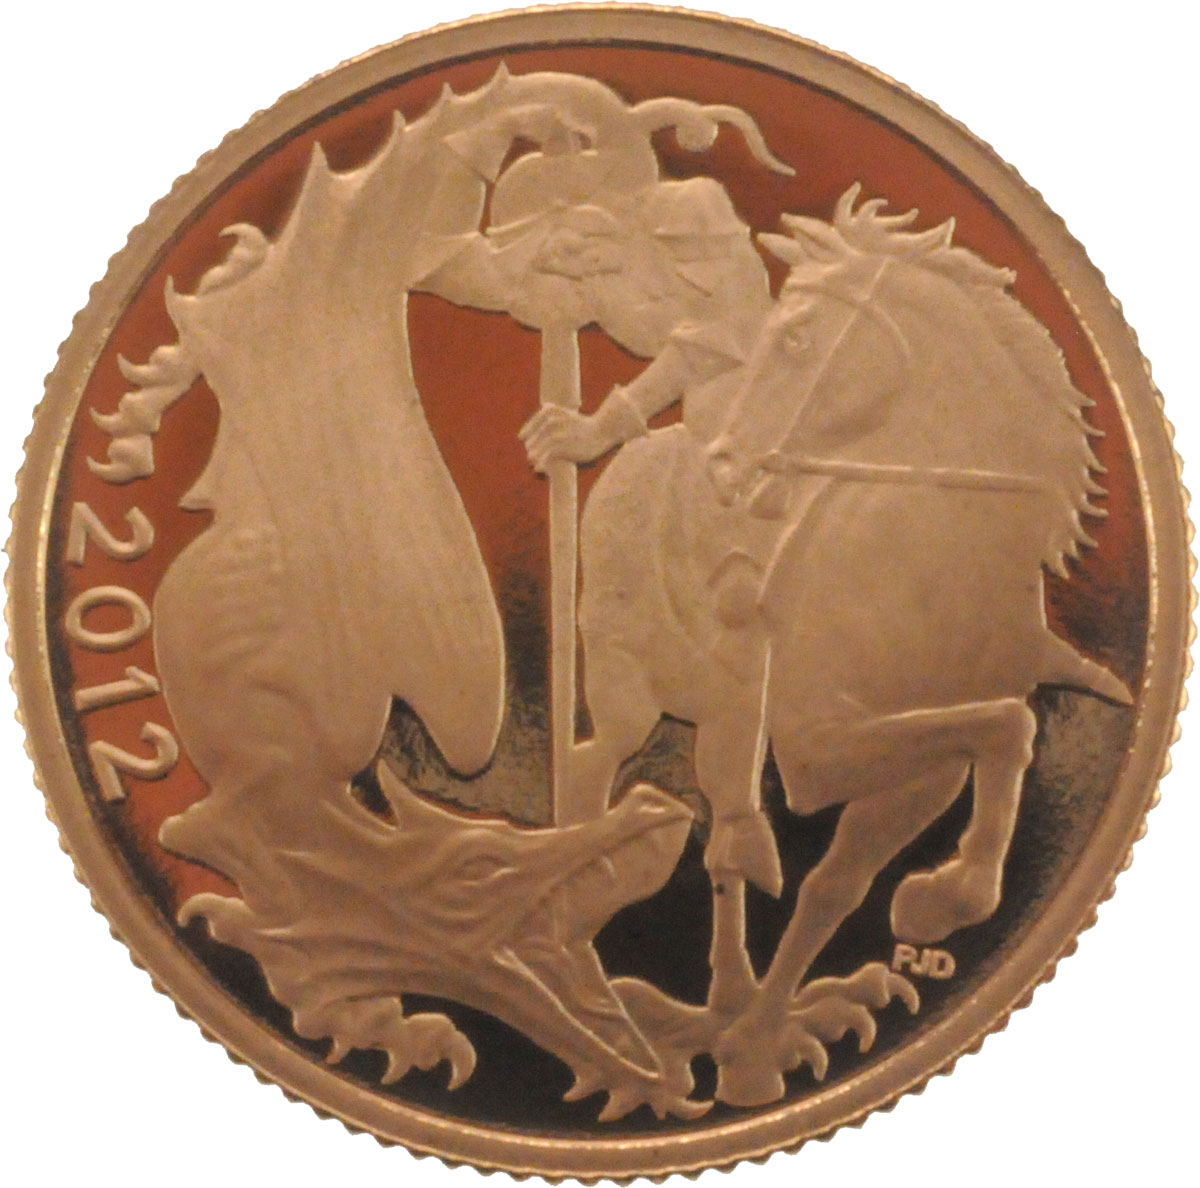 Reverse Face of a 2012-Gold-Sovereign